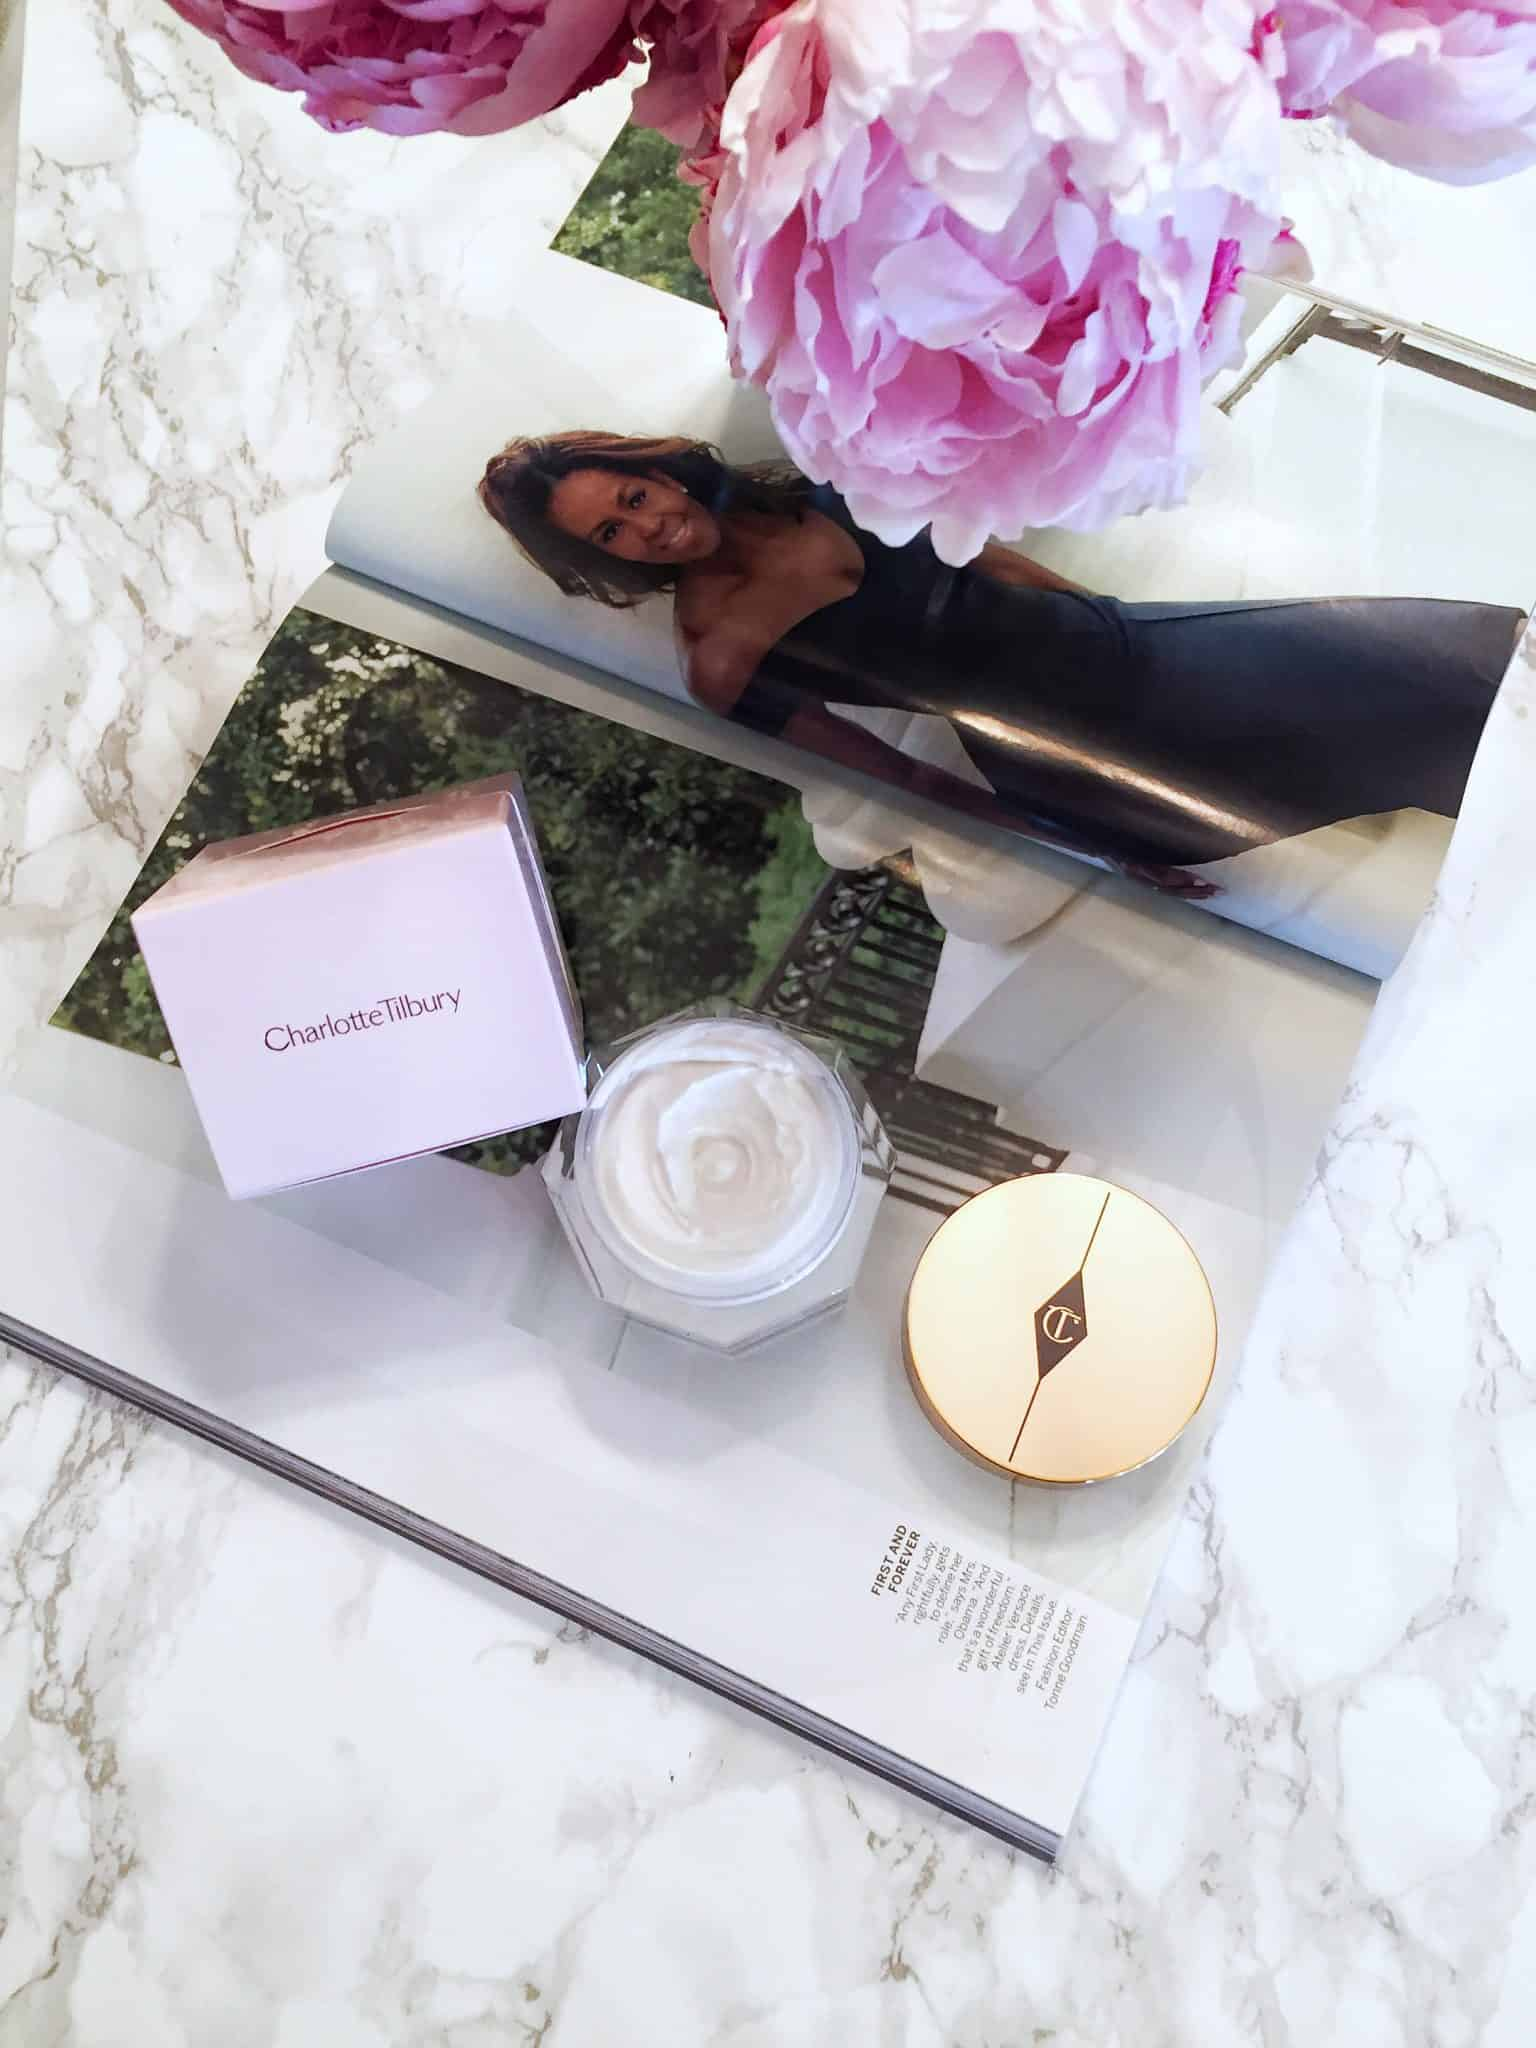 How to Get a Plumped, Glowing, Youthful Dewy Complexion in a Flash!